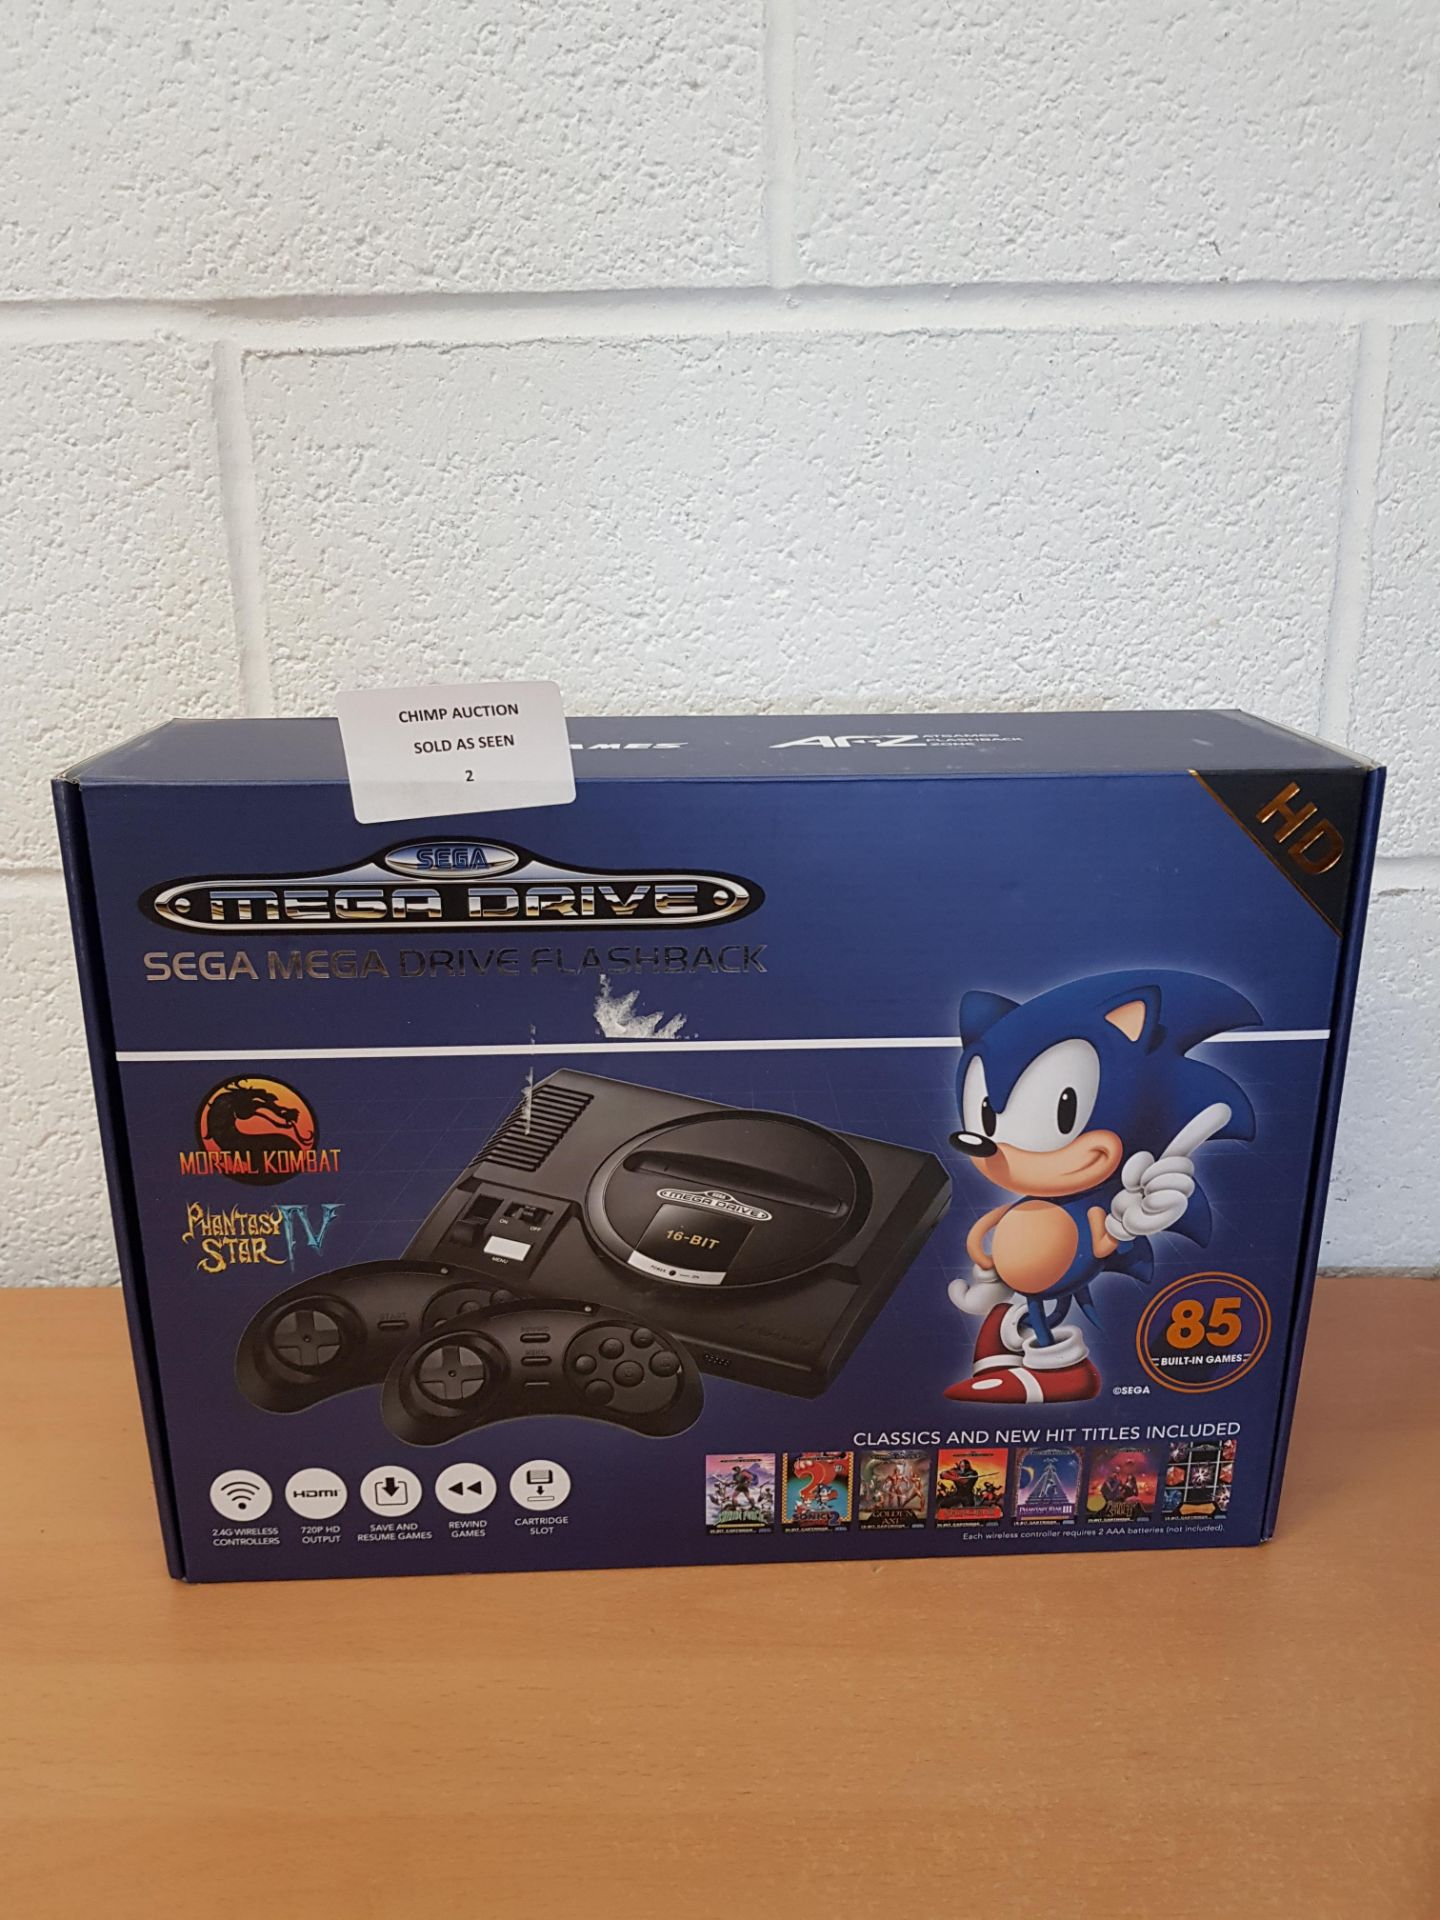 Lot 2 - Sega Mega Drive HD Flashback + 85 games retro Console RRP £79.99.